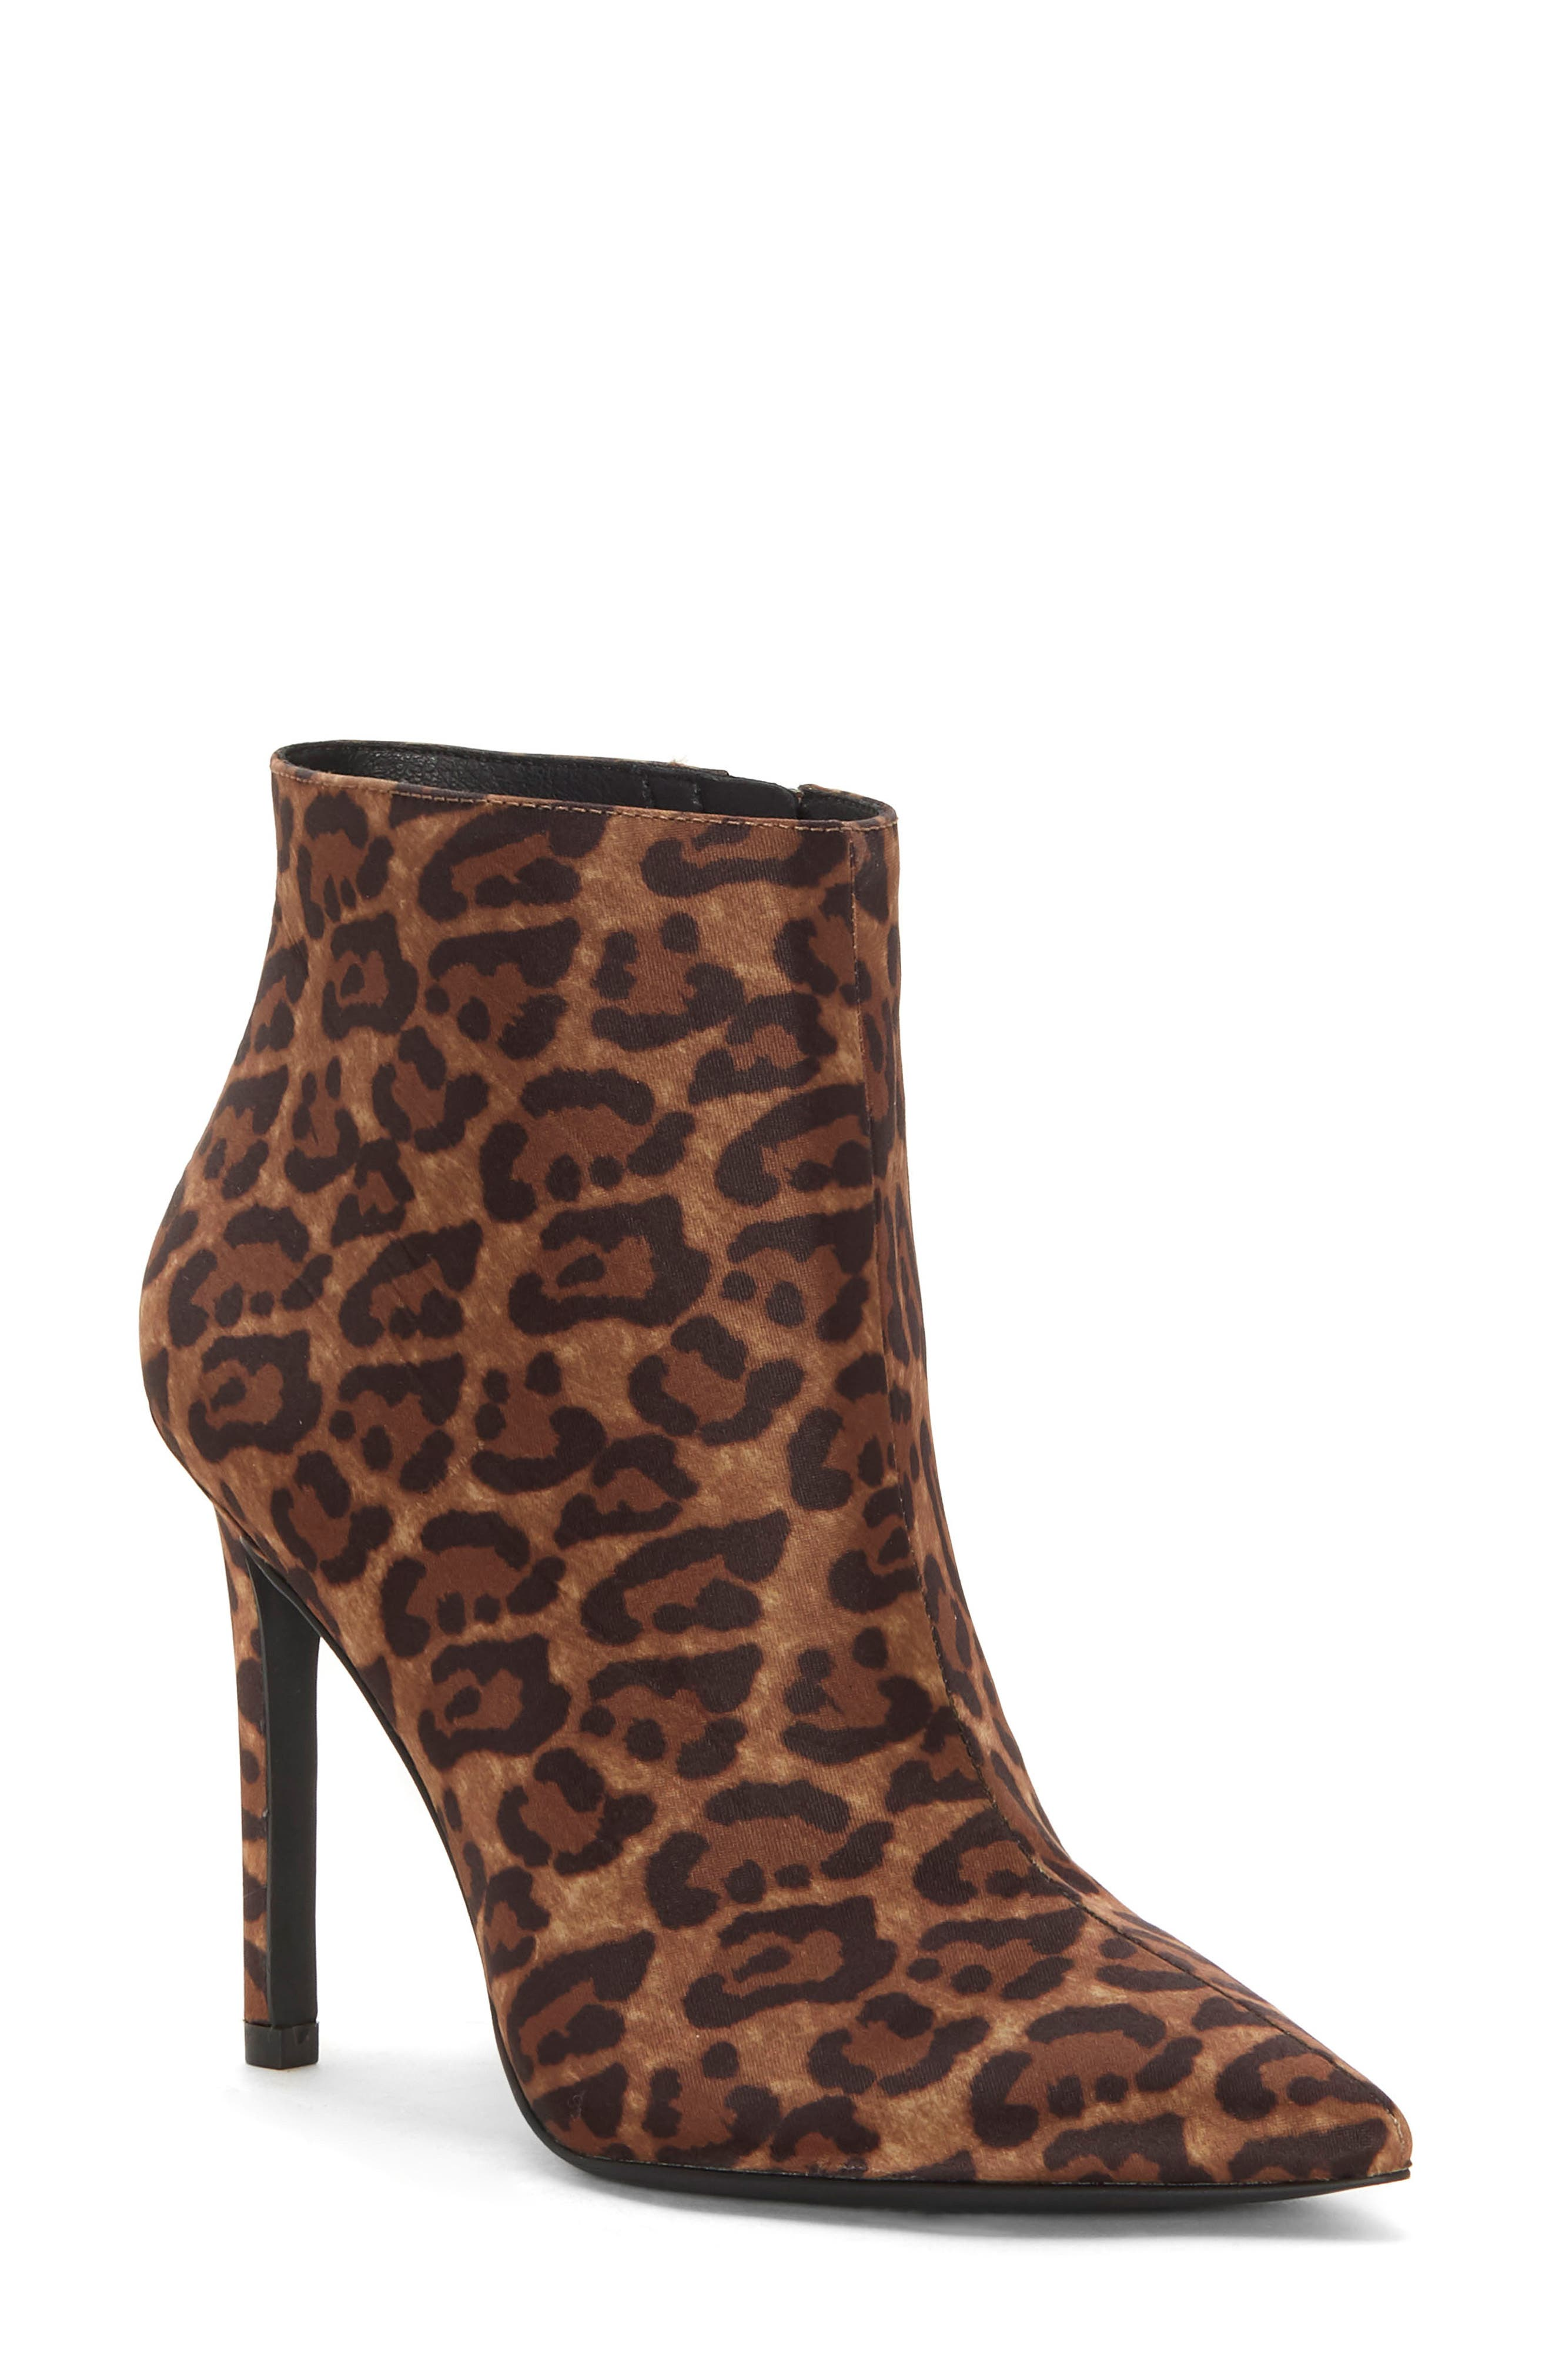 Jessica Simpson Perci Bootie, Brown